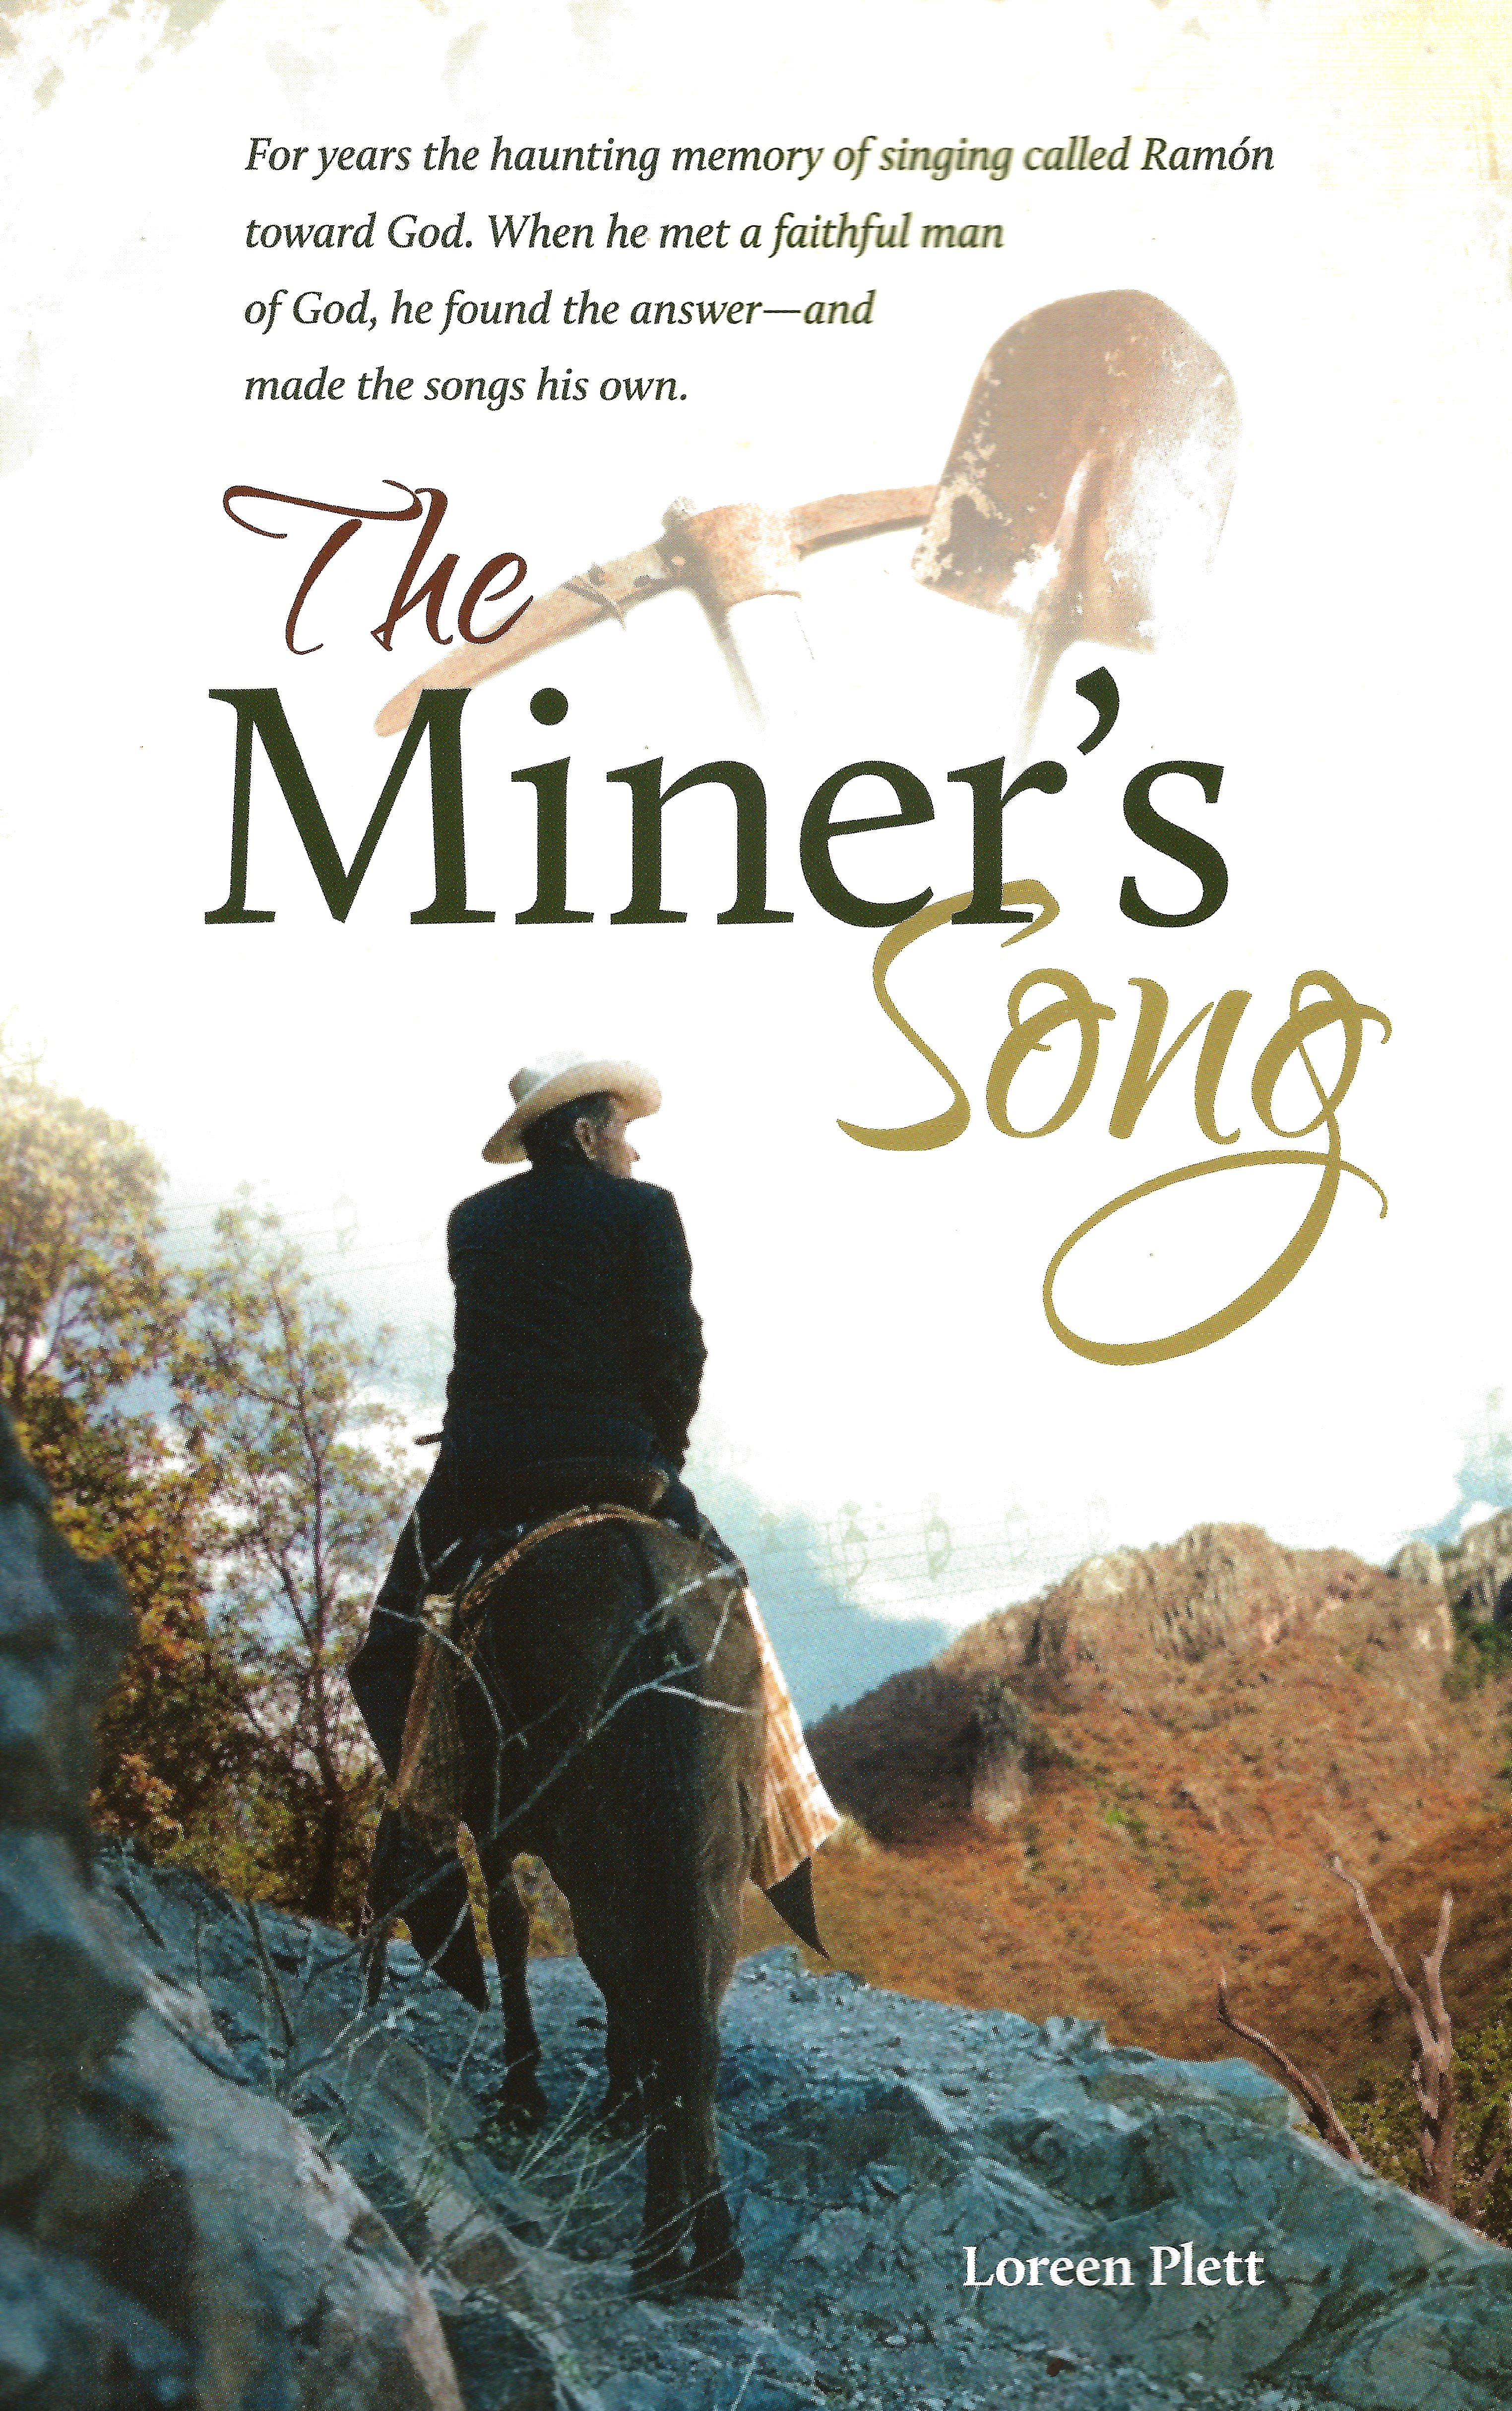 THE MINER'S SONG Loreen Plett